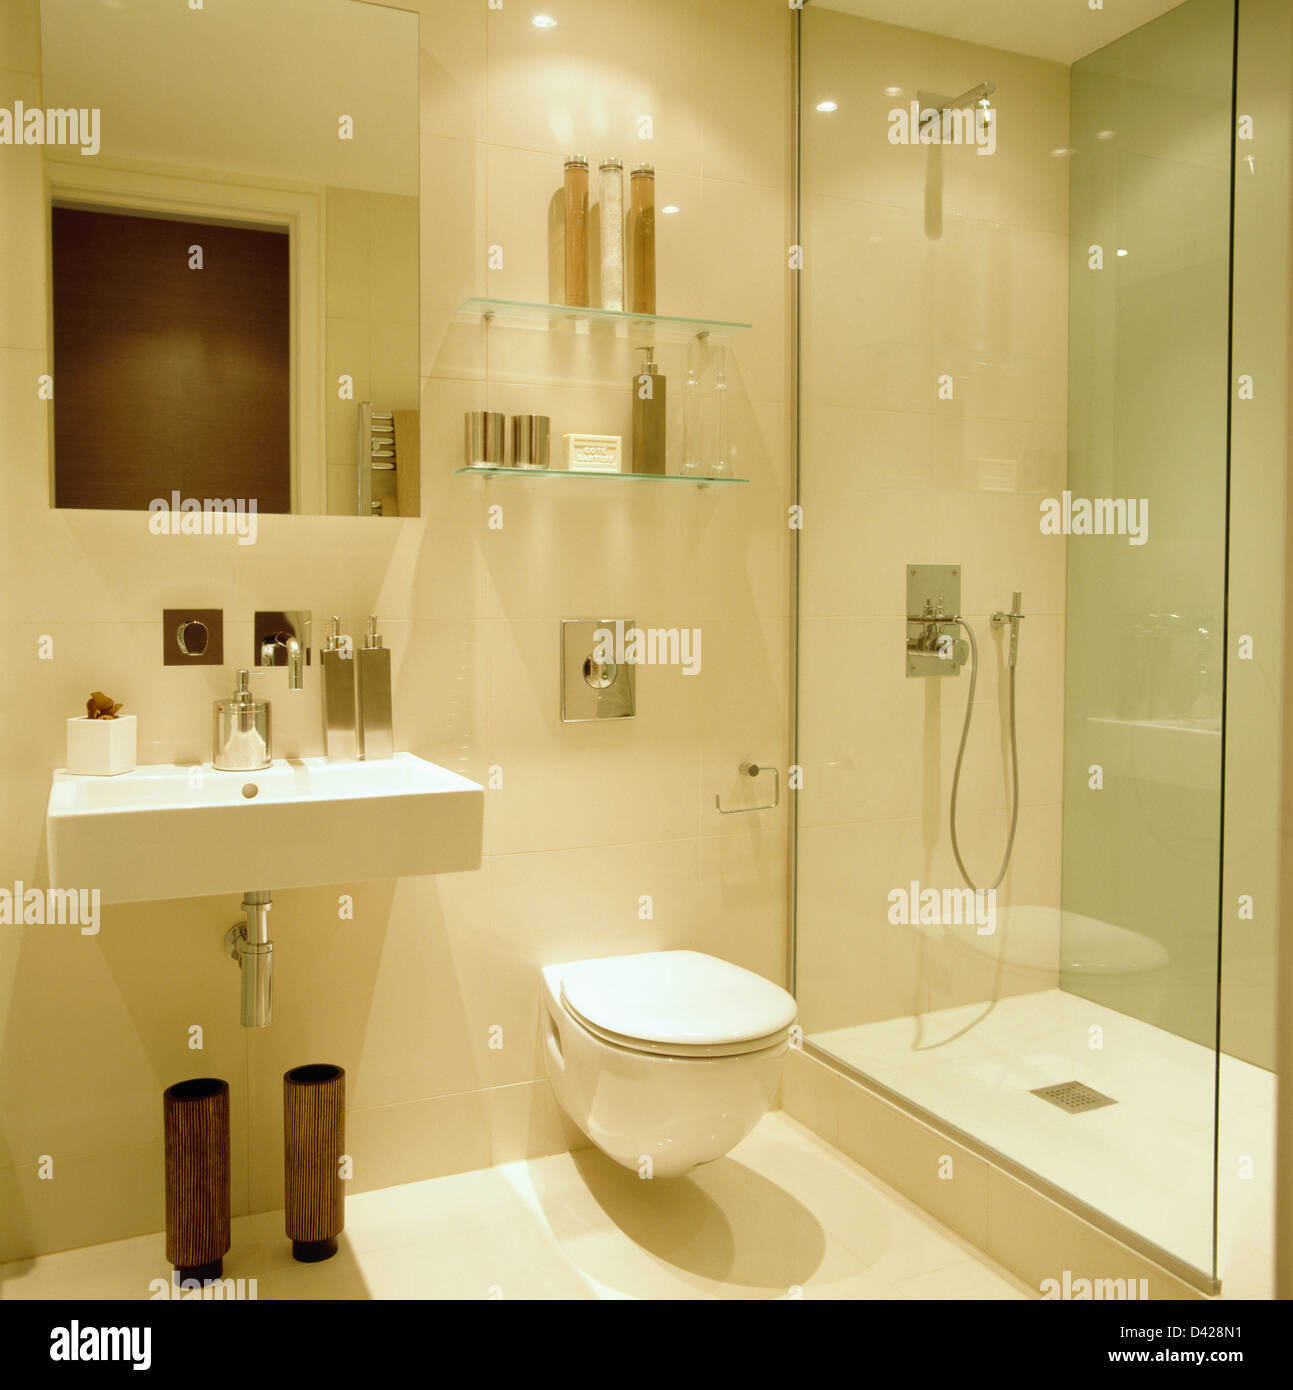 Wall Mounted Basin And Glass Shower Cabinet In Modern White Bathroom Stock Photo 54140493 Alamy